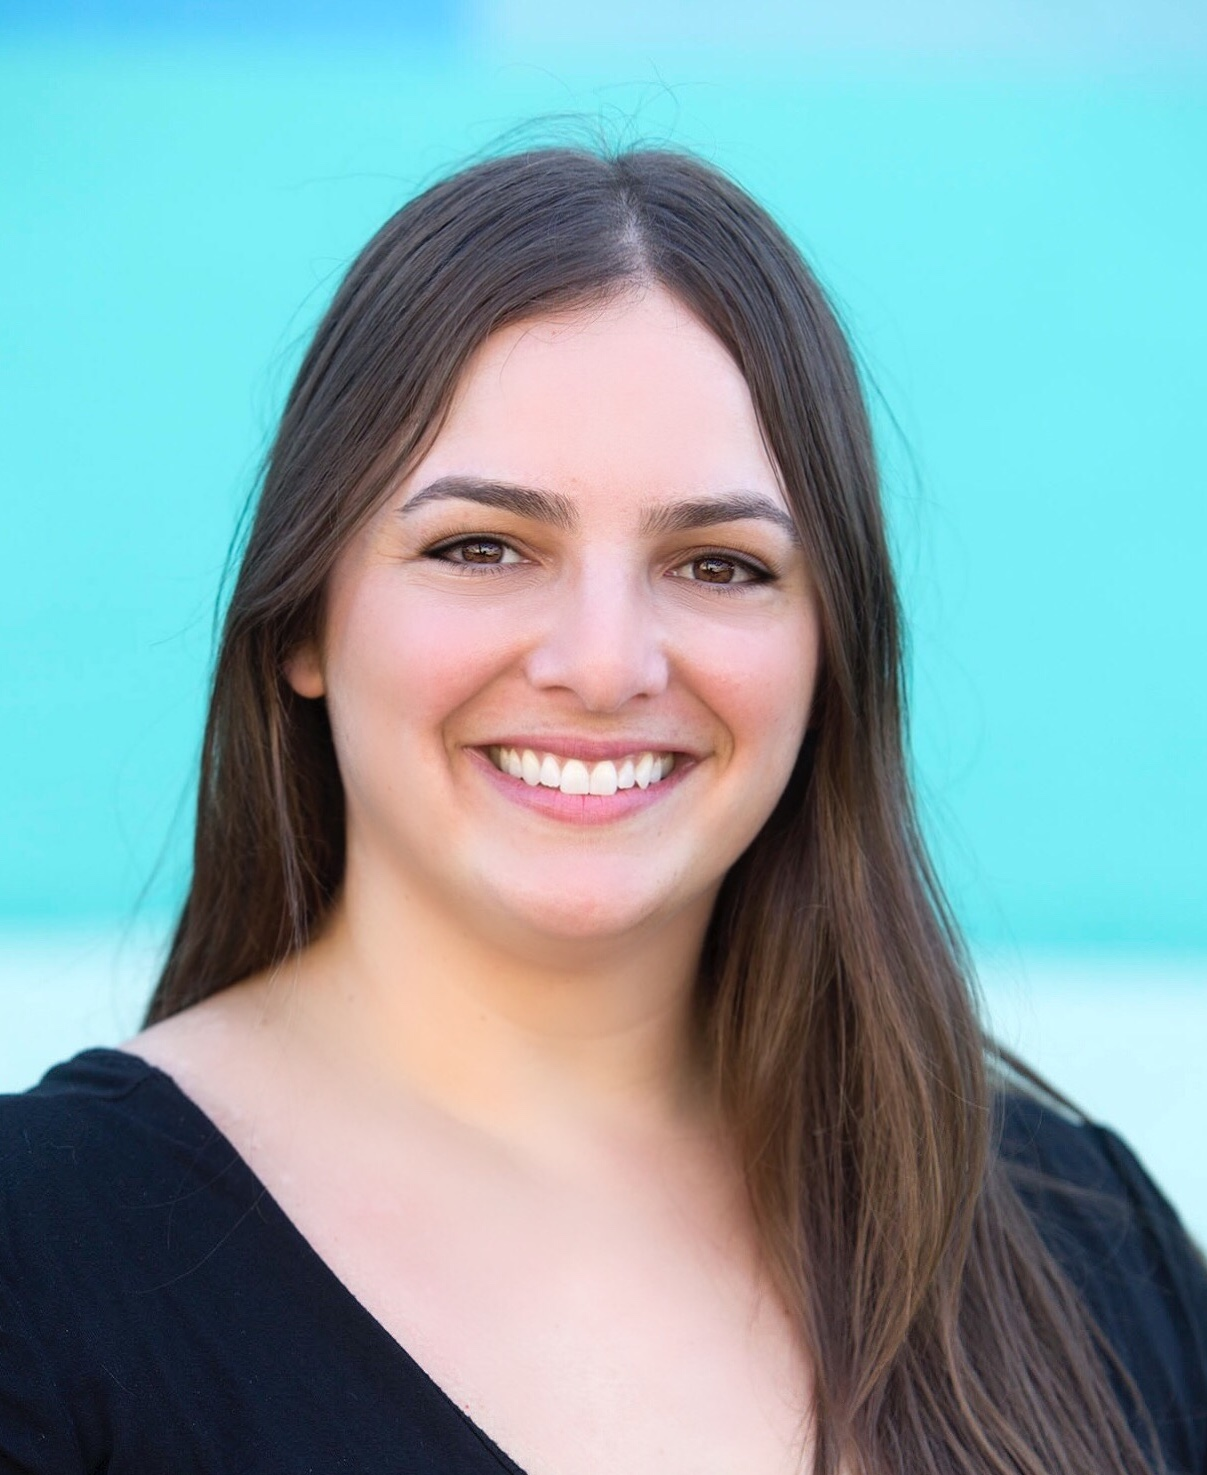 I'm Jodee. I'm a licensed psychotherapist supporting individuals, couples,  and families in the San Francisco Bay Area.